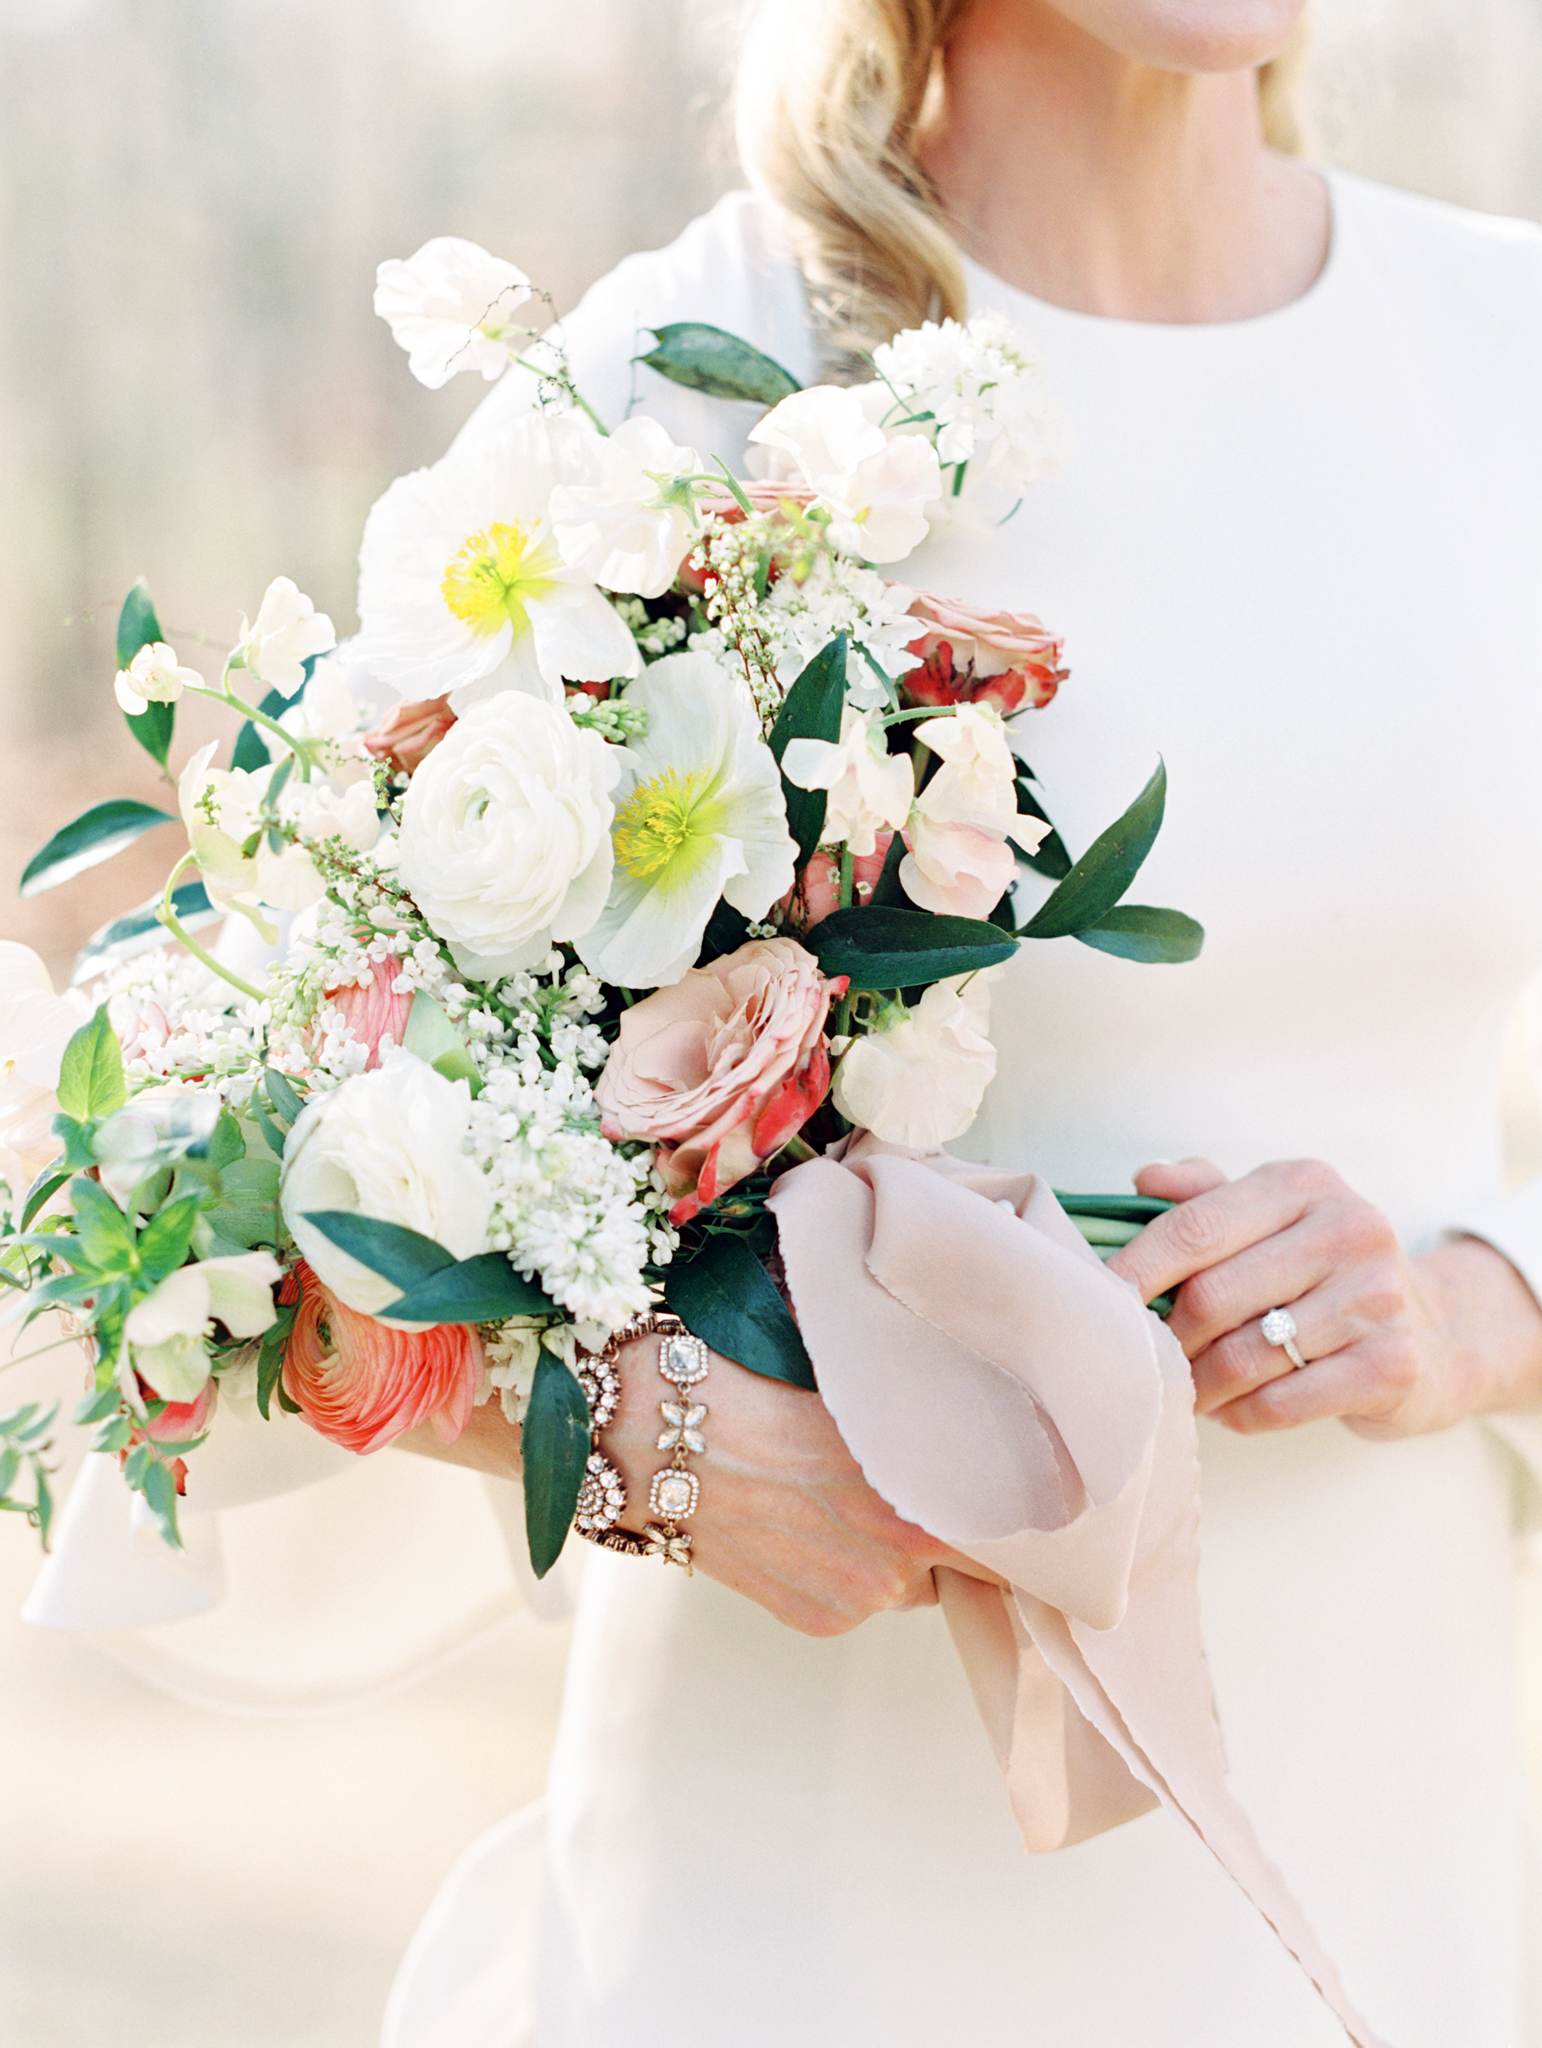 Atlanta wedding flowers peonies roses ranunculus white